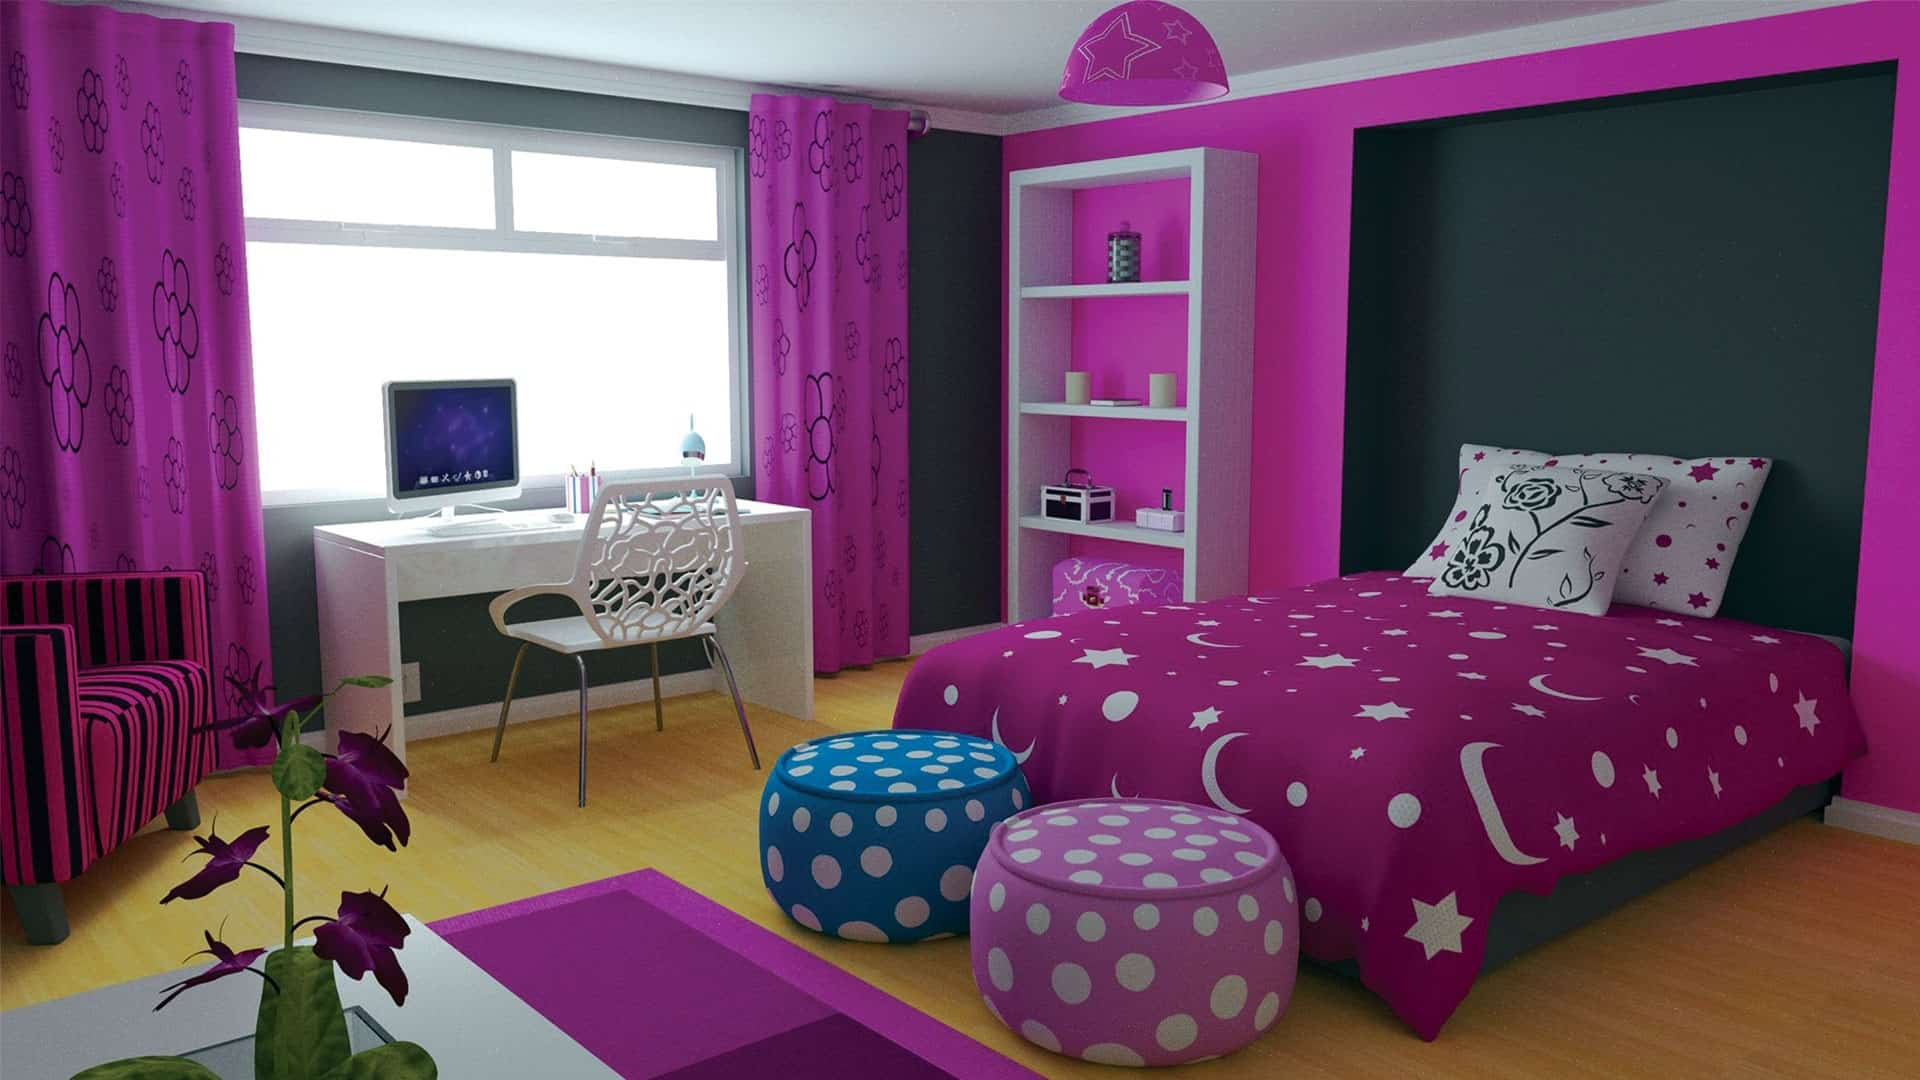 Home decor trends 2017 purple teen room house interior Teenage girls bedrooms designs